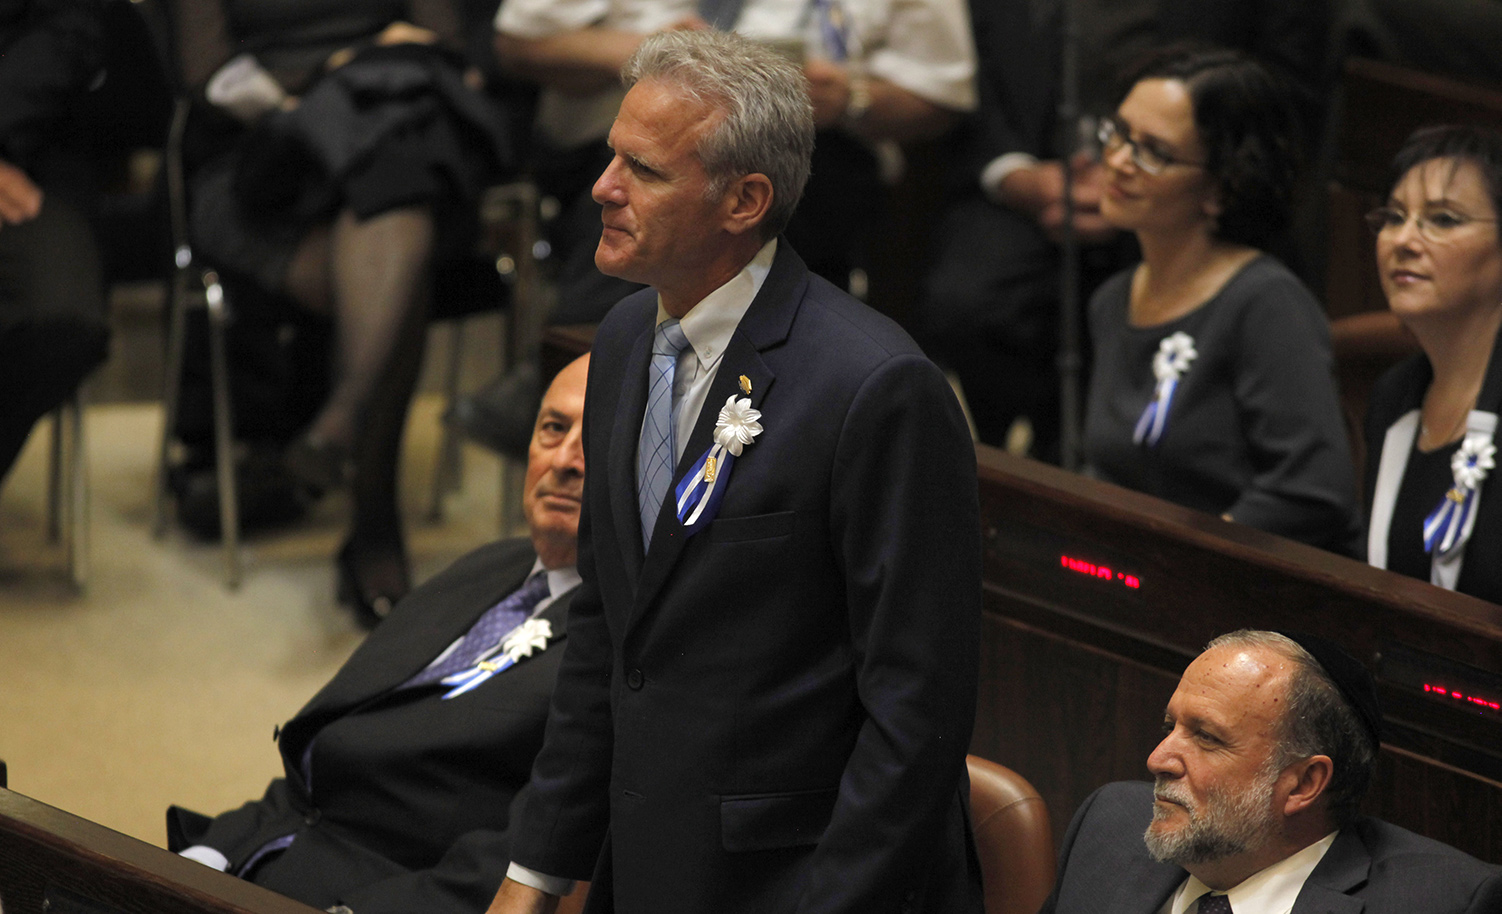 Michael Oren in the Knesset on March 31, 2015 in Jerusalem. HEIDI LEVINE/AFP via Getty Images.